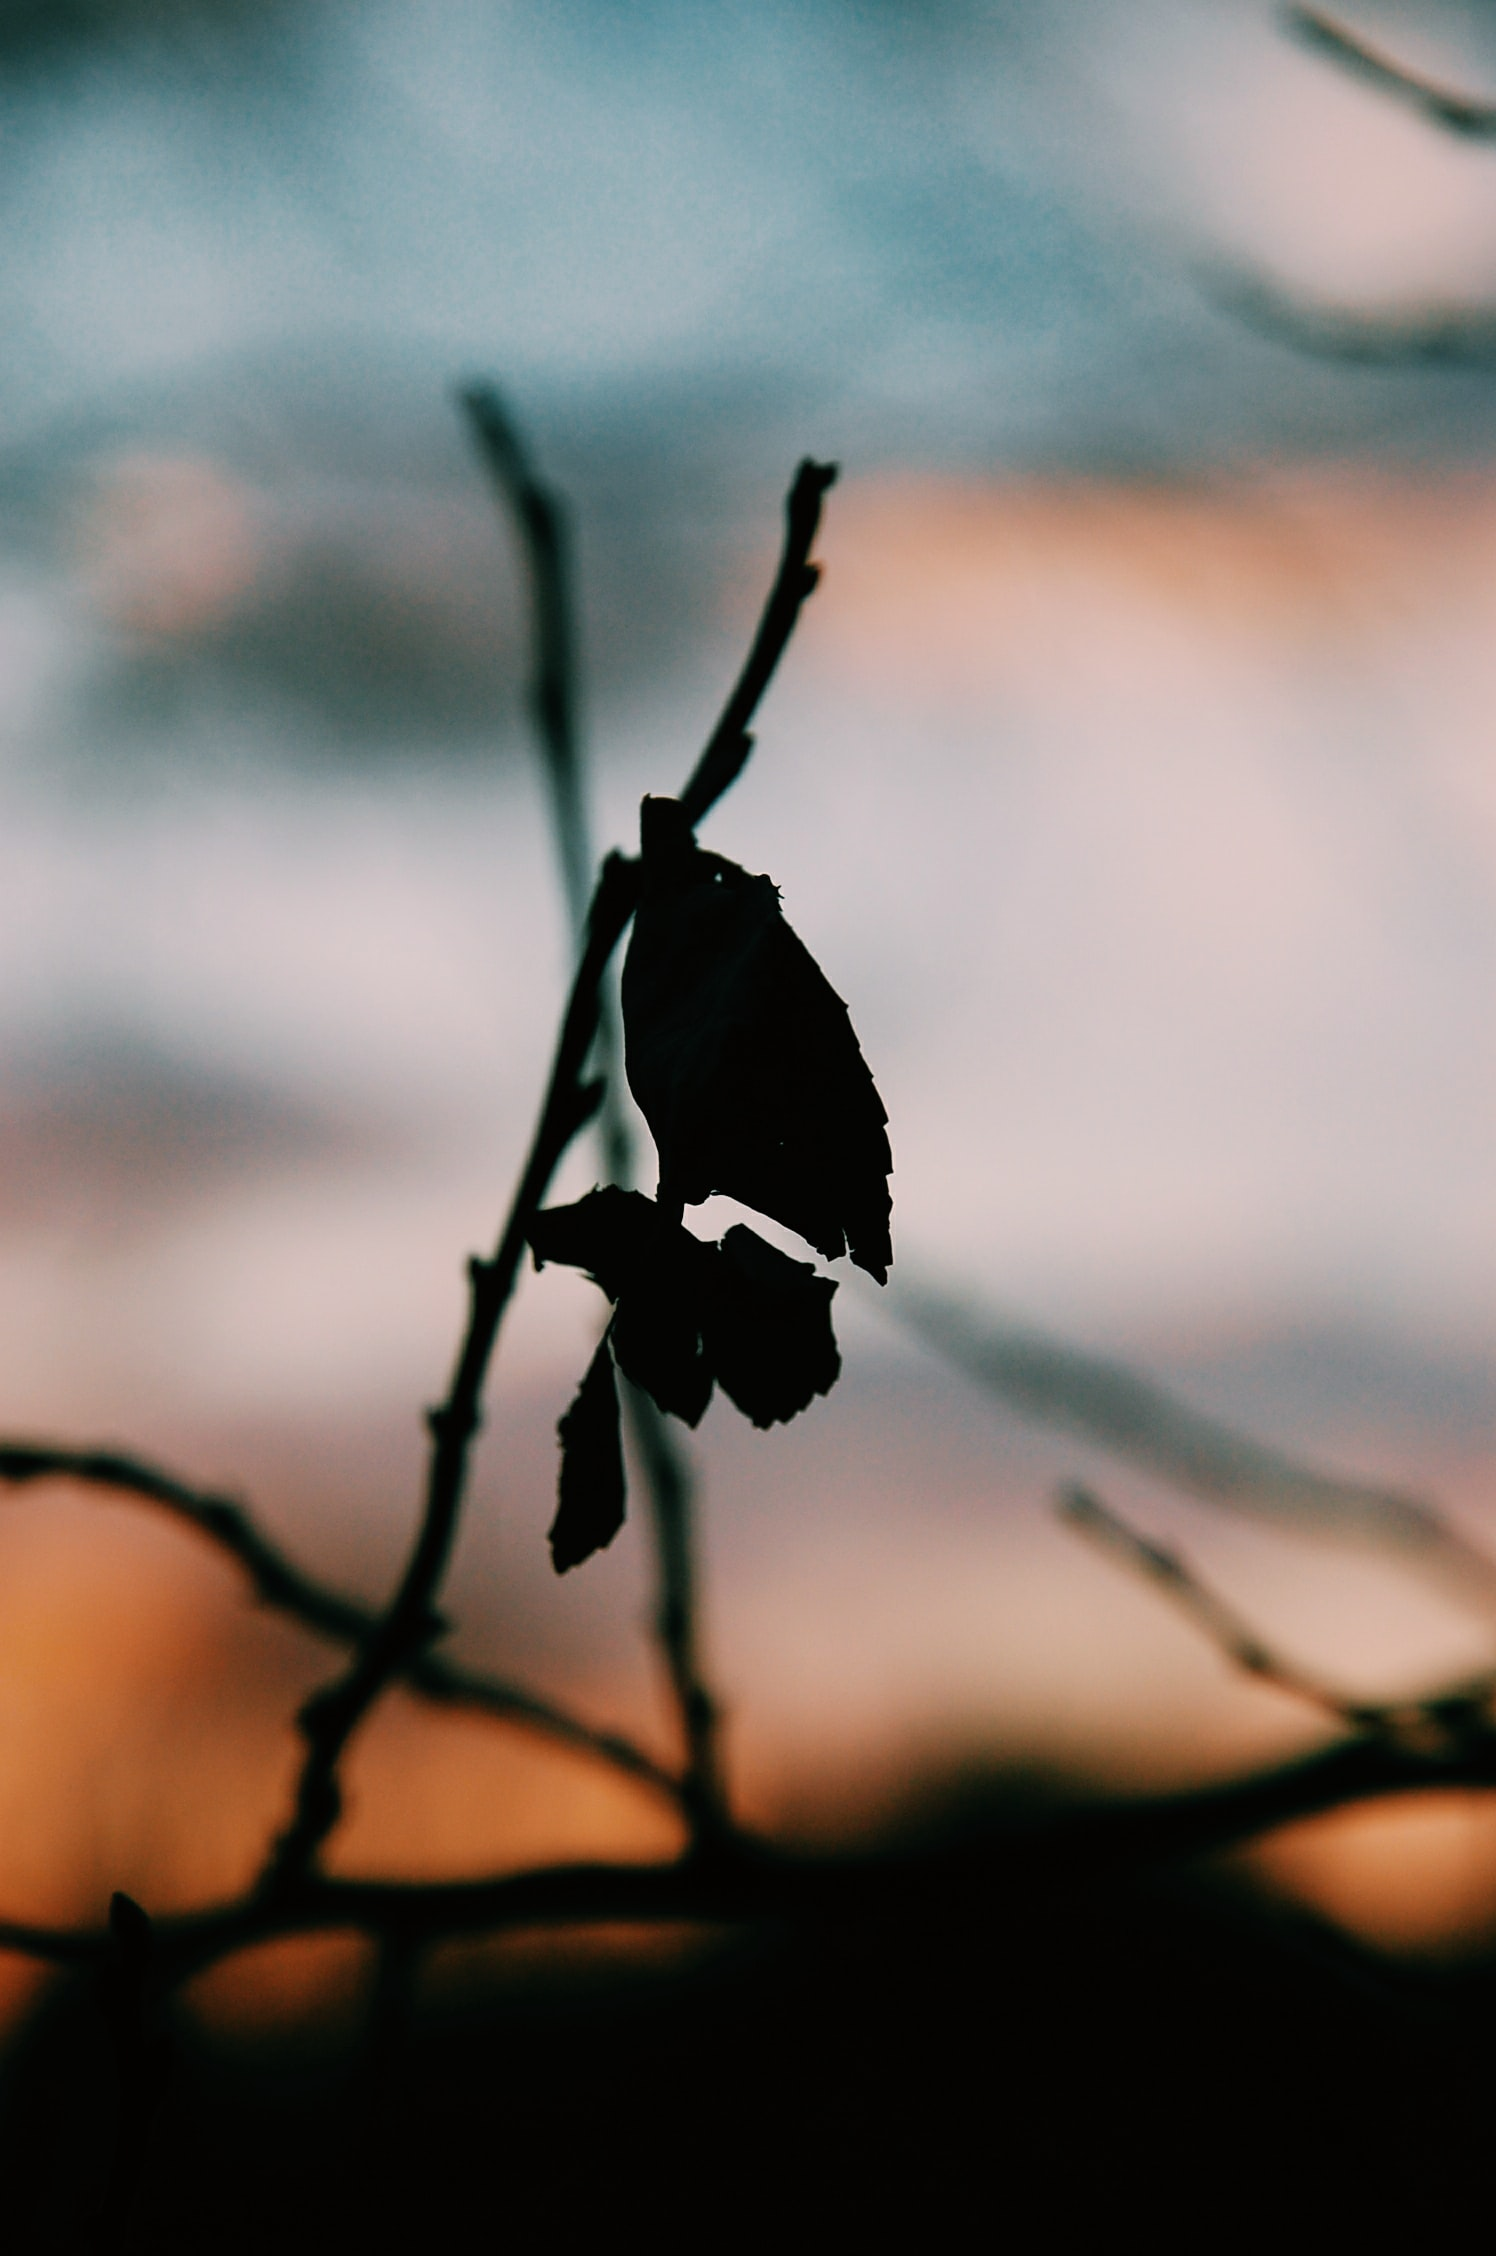 silhouette of leafed plant